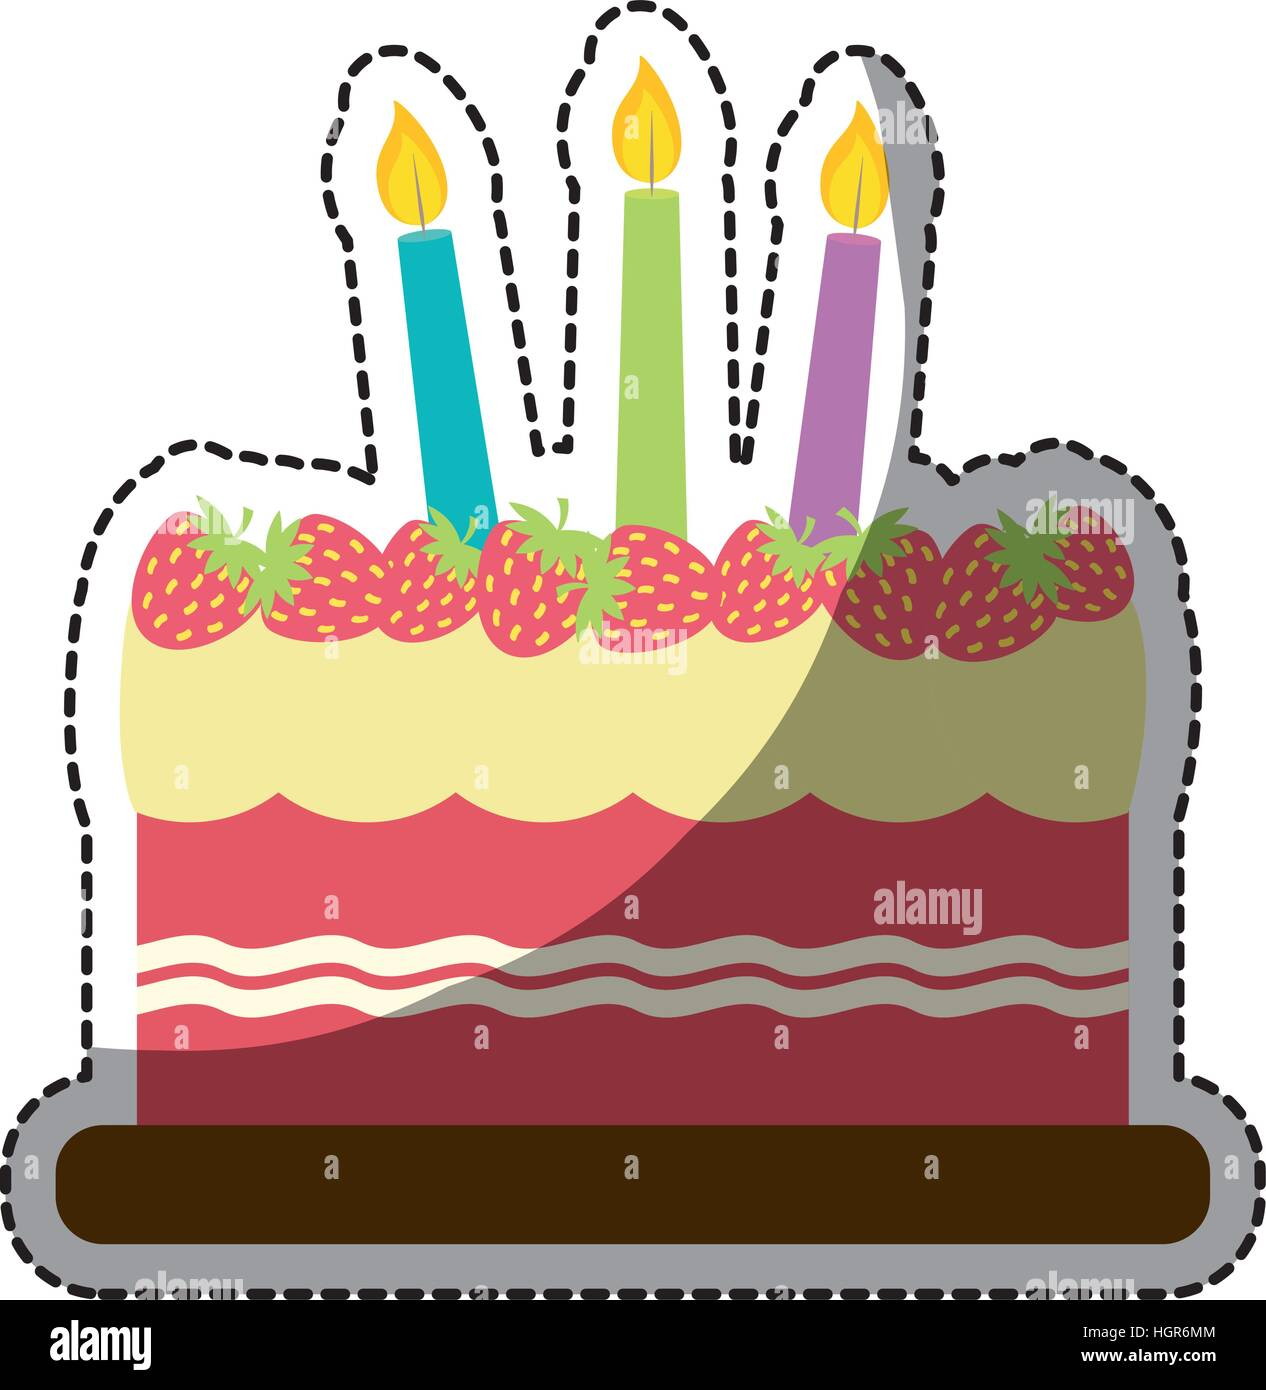 Strawberry Birthday Cake With Candles Icon Image Sticker Vector